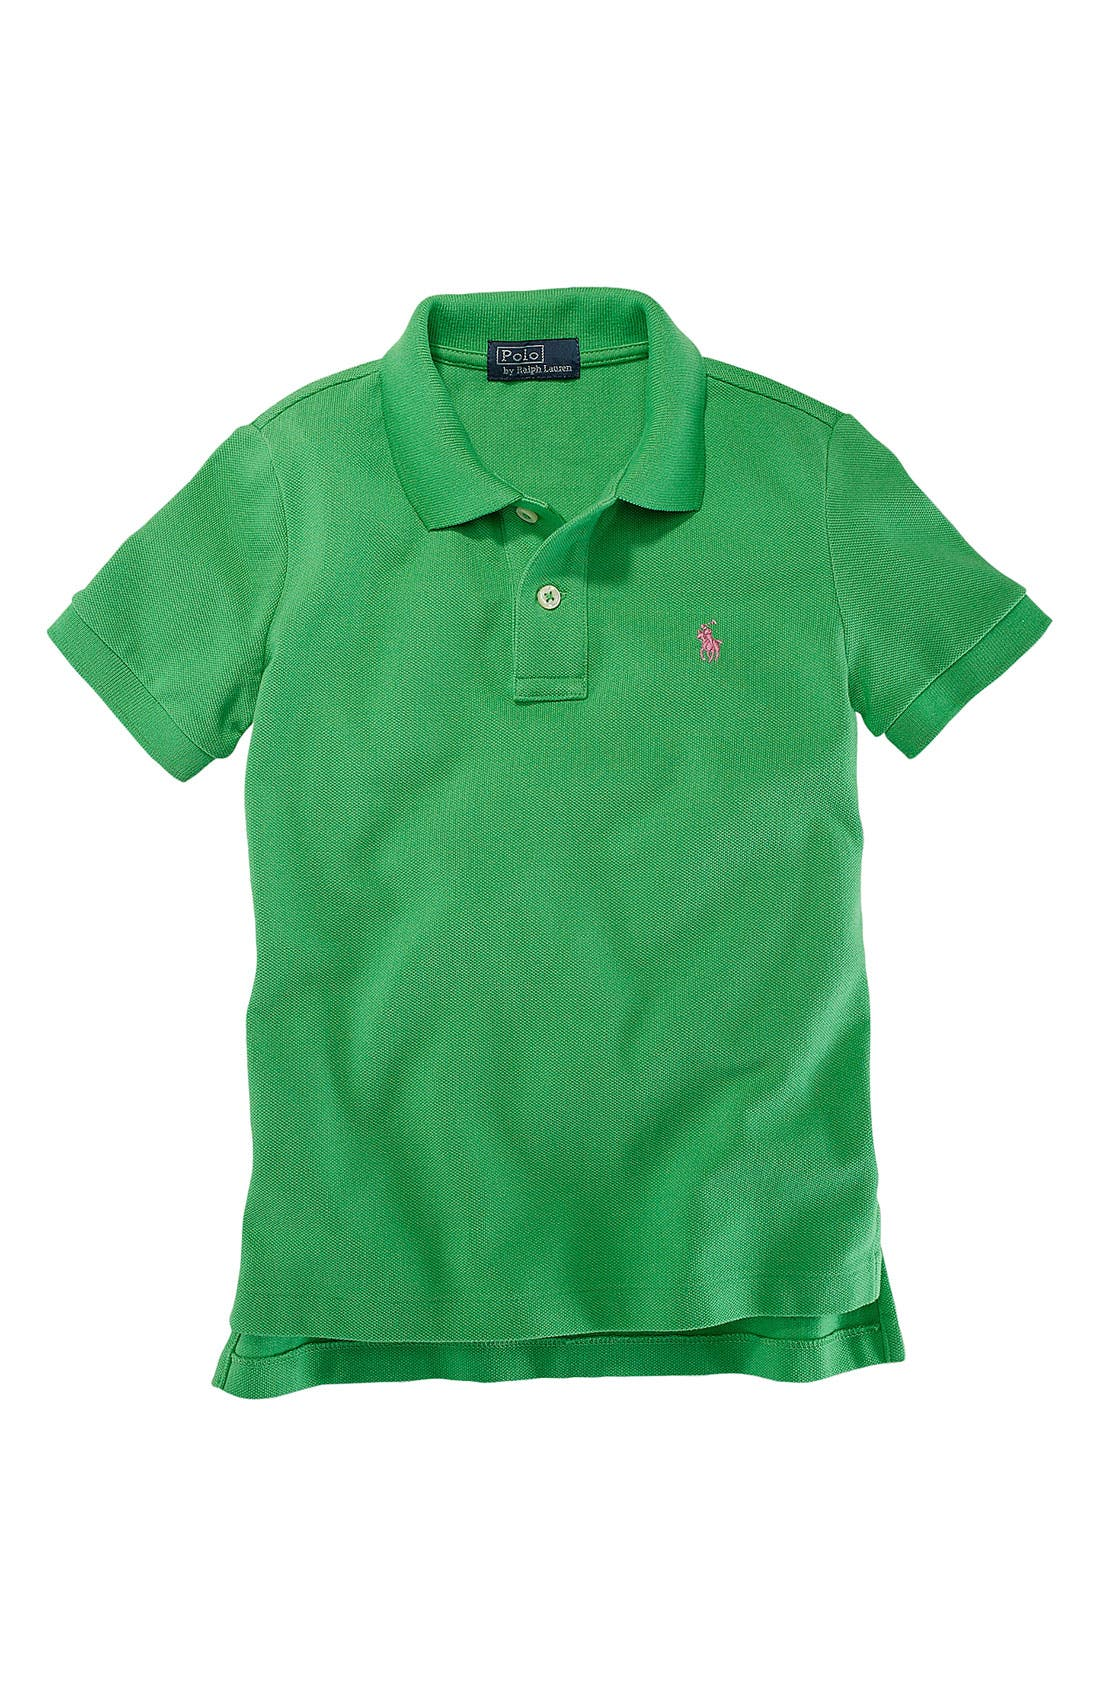 Alternate Image 1 Selected - Ralph Lauren Mesh Polo (Toddler)